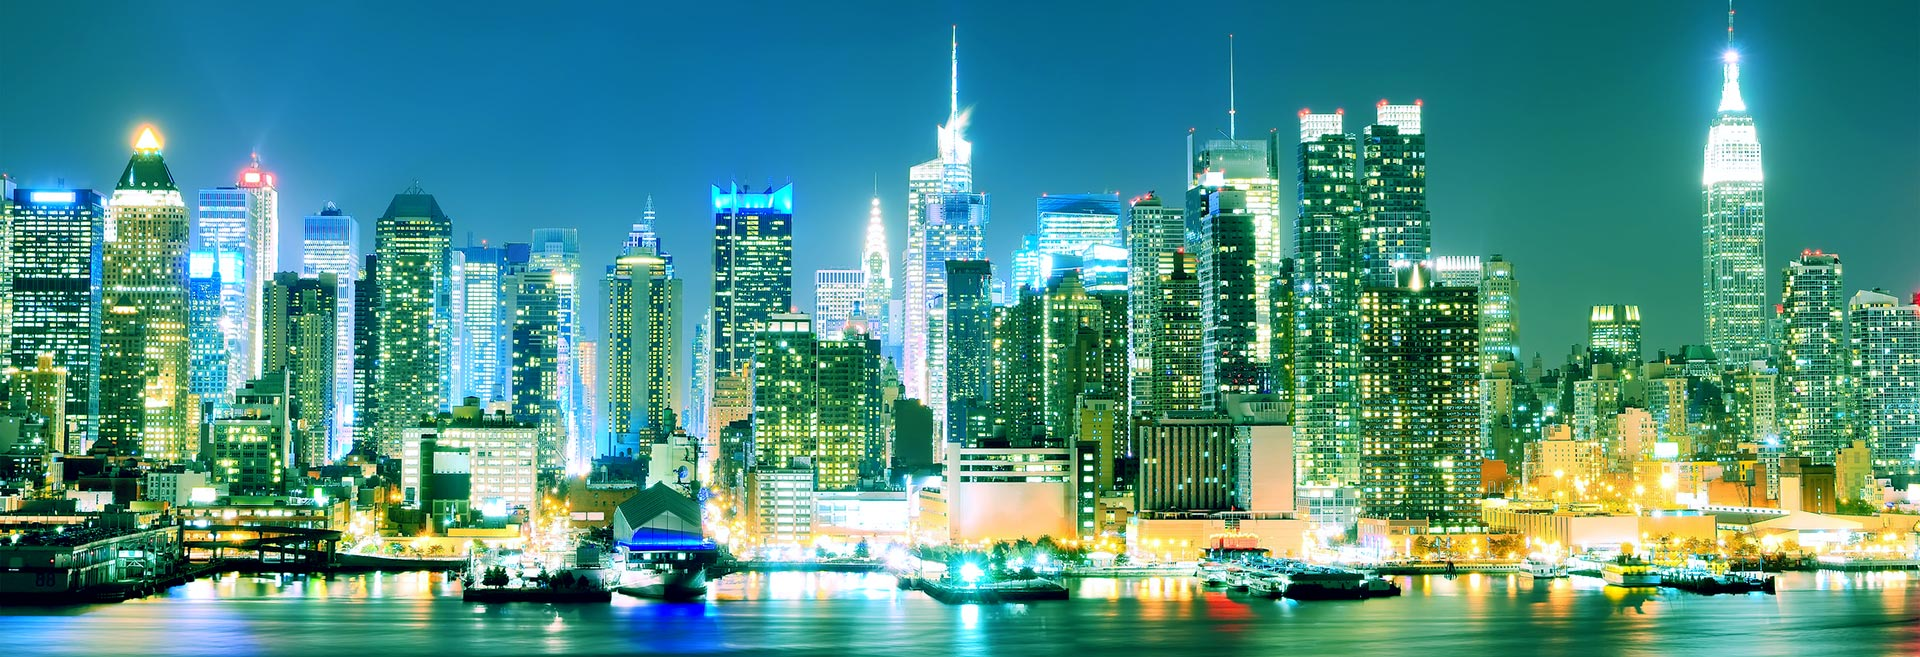 photo of NYC at night